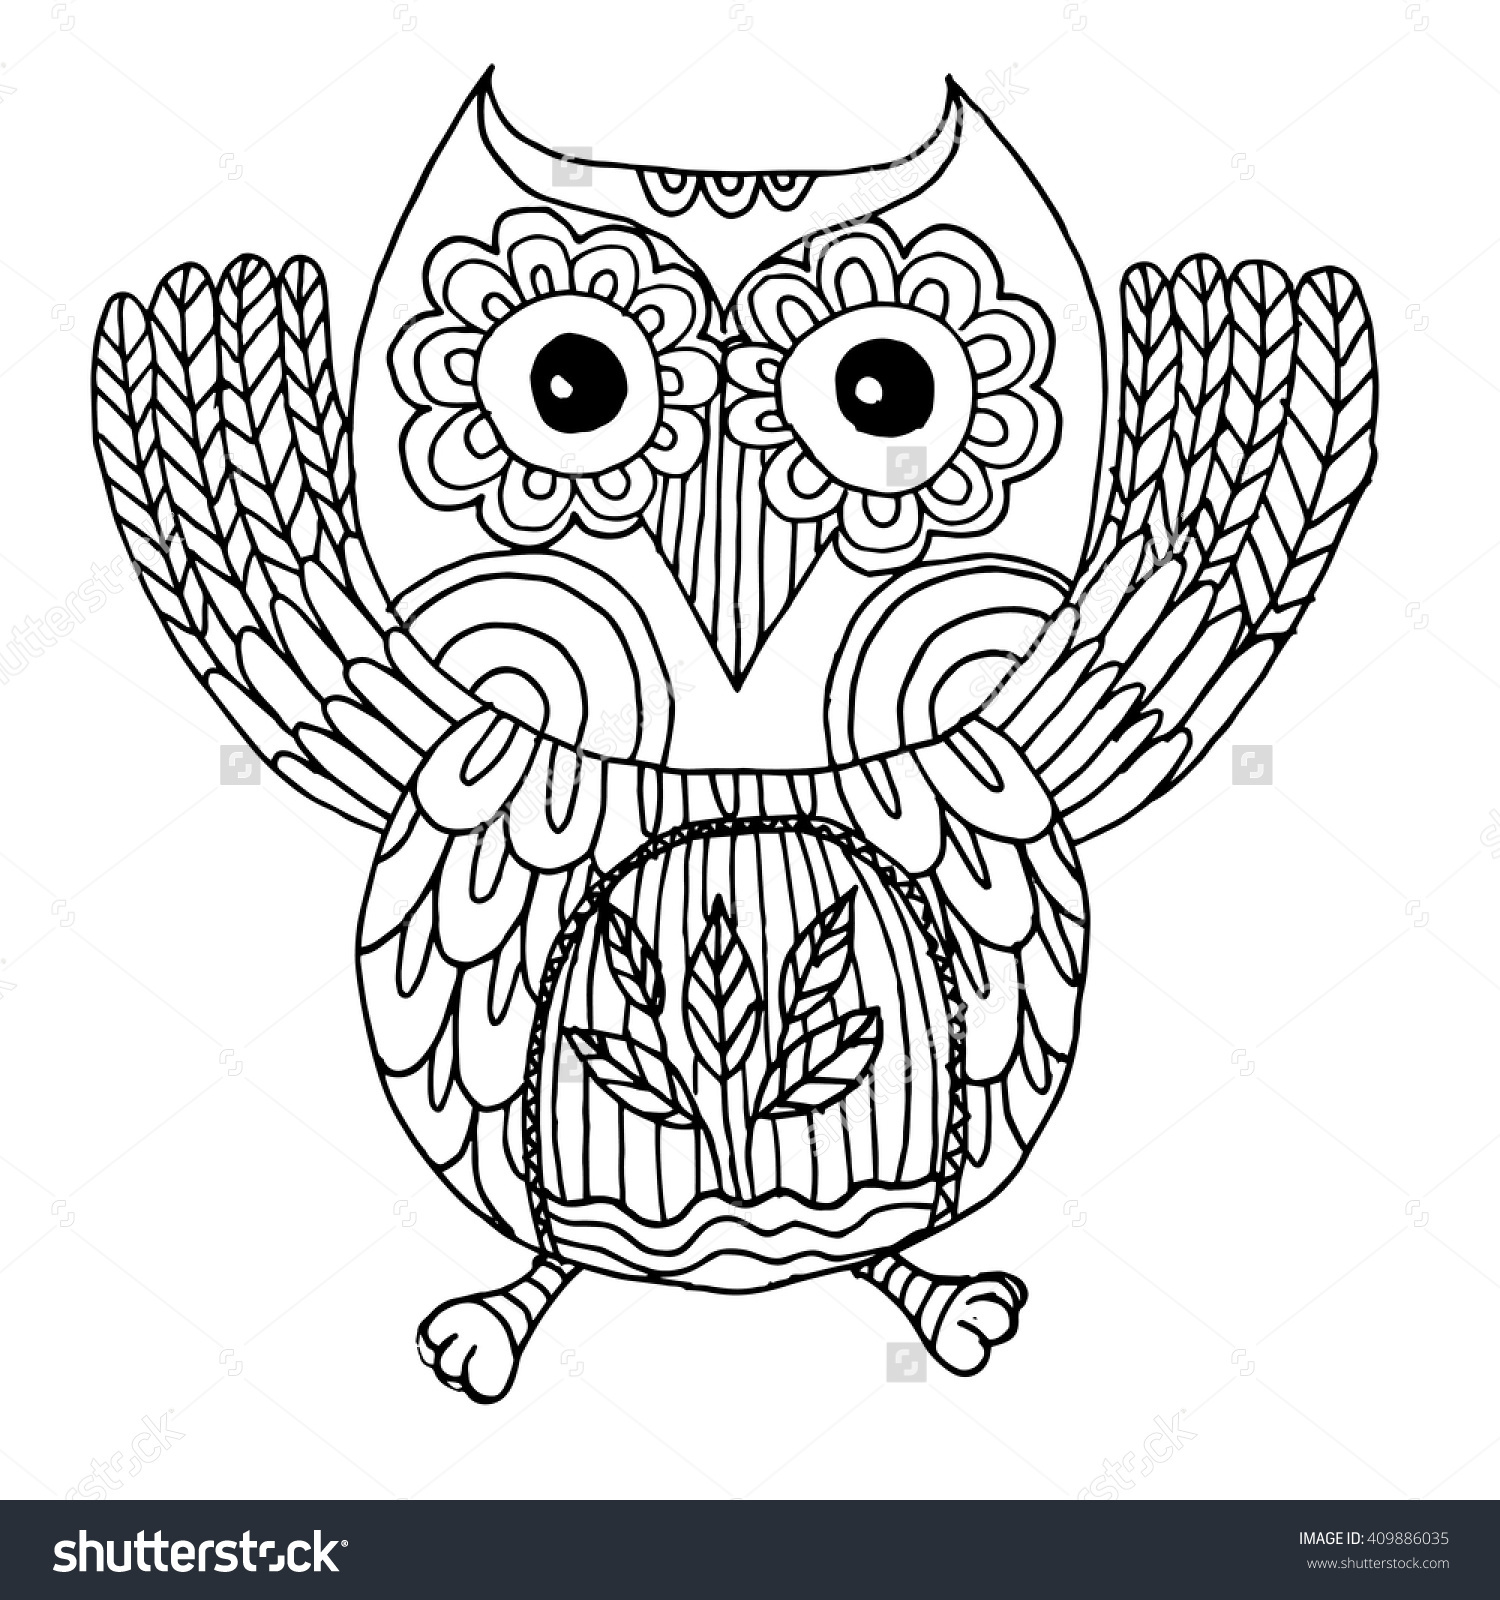 Owlfly coloring #6, Download drawings